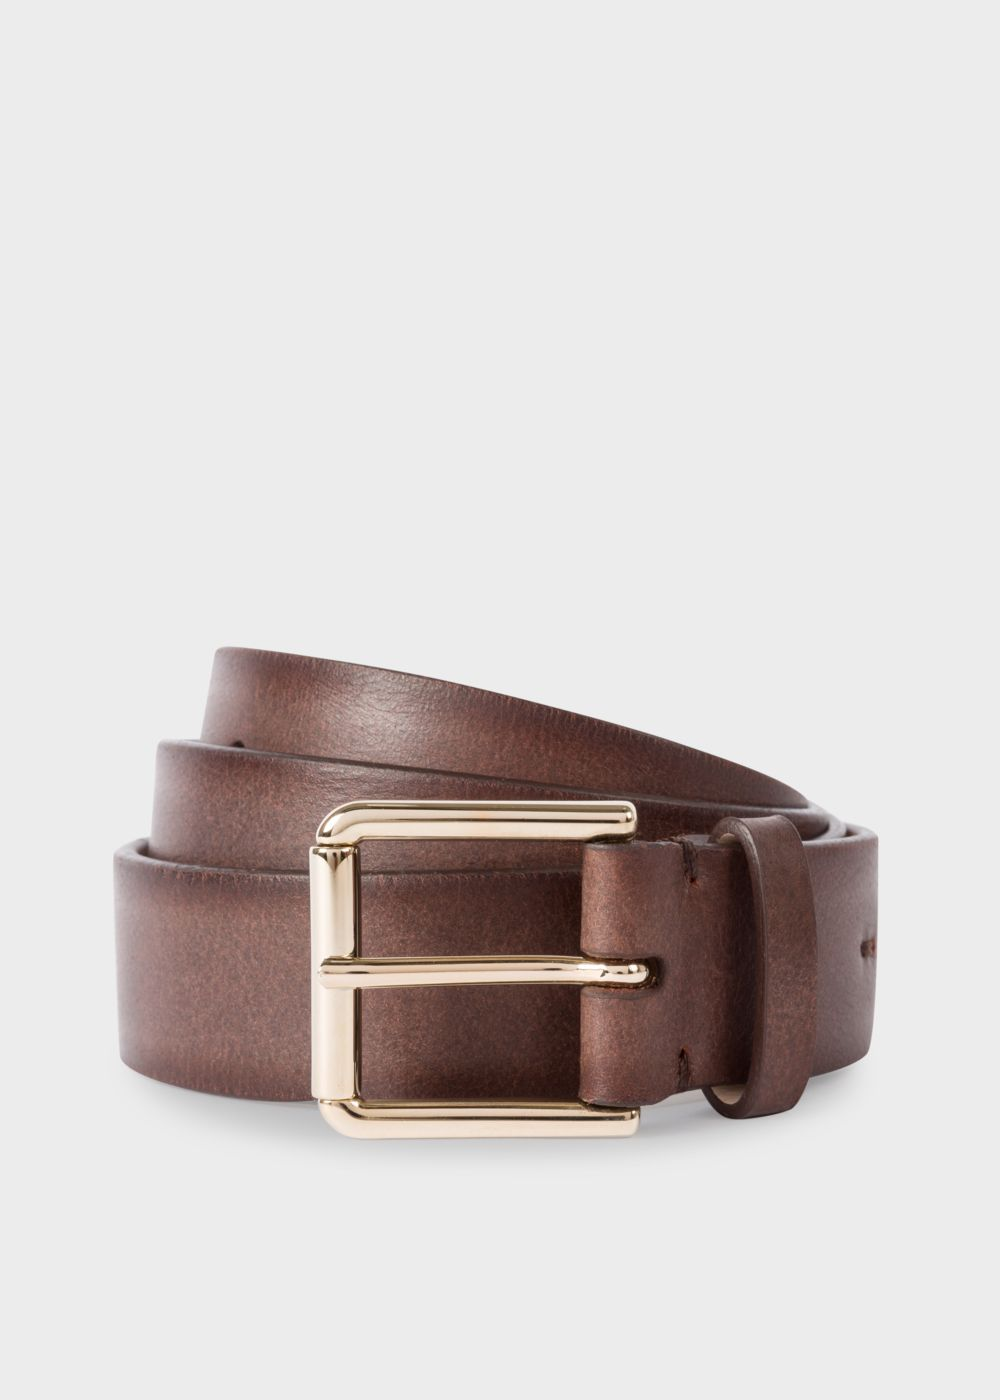 Paul Smith Men's Chocolate Brown Burnished Leather Belt